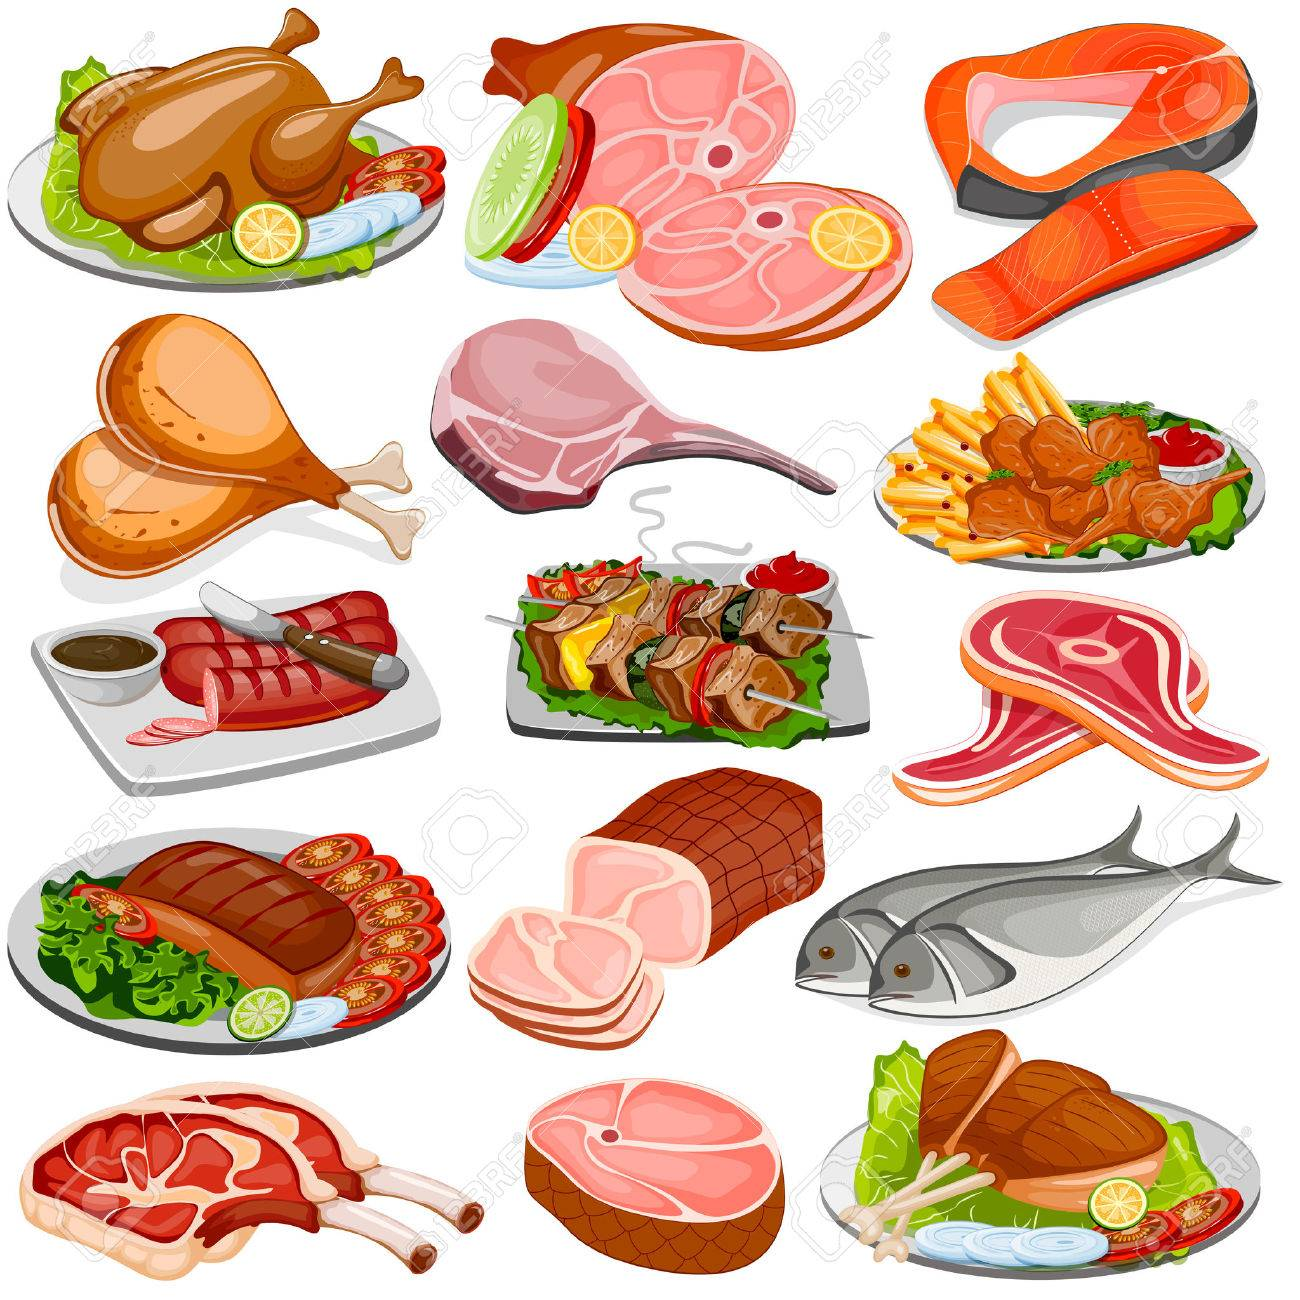 vector illustration of Poultry and Meat Product Food Collection - 60780935